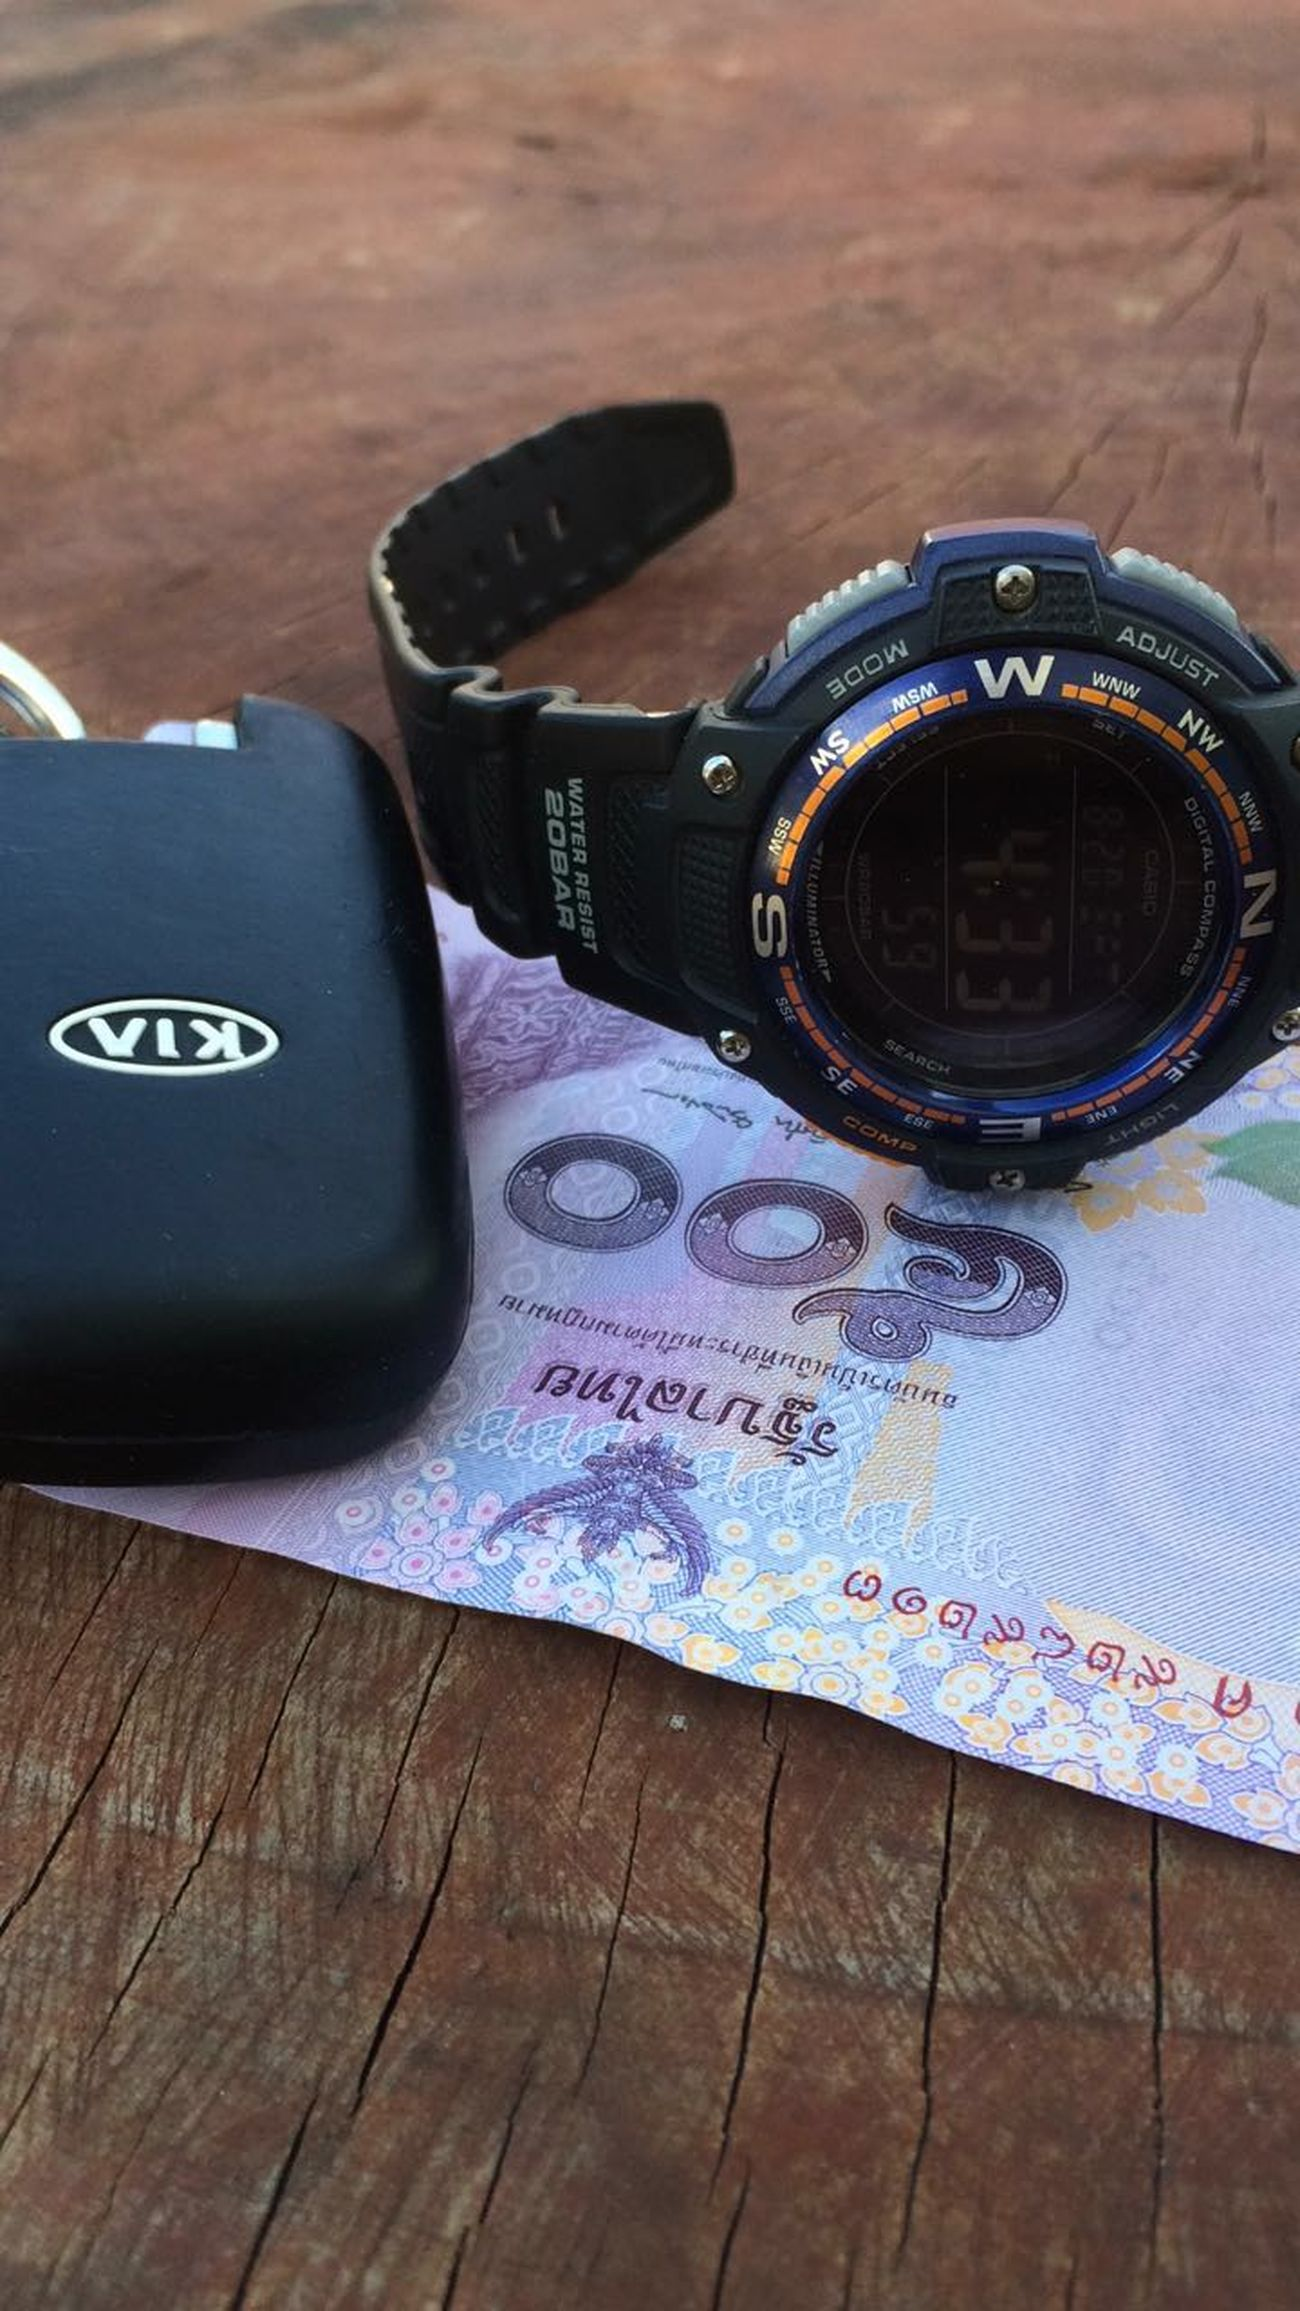 Baht Thai Camera - Photographic Equipment Casio Casio Watch Day Kia No People Photography Themes Table